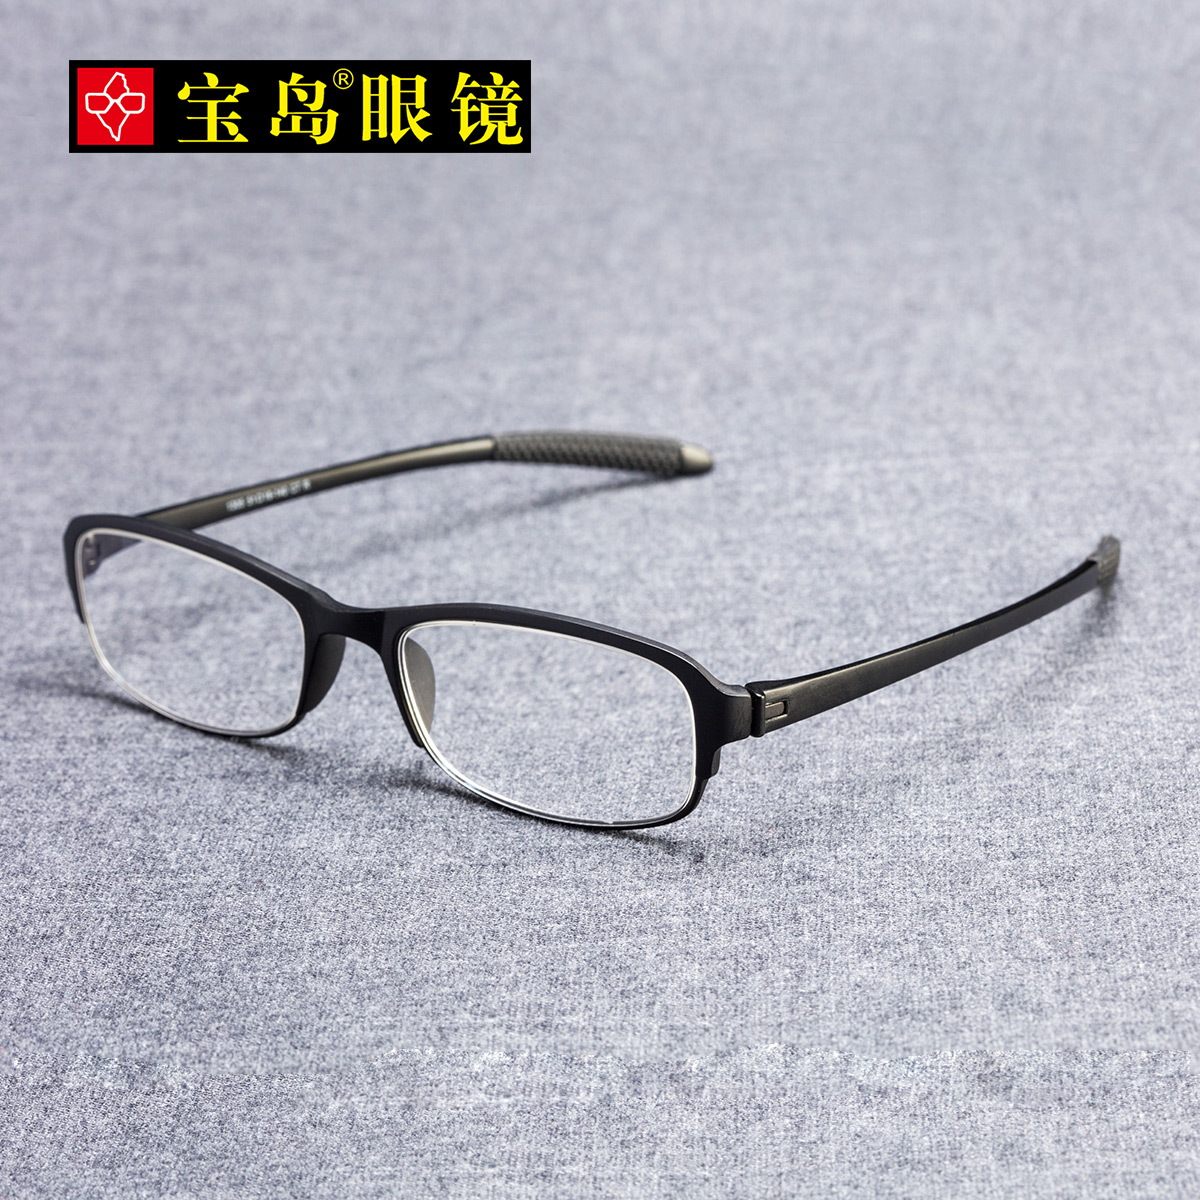 Baodao reading glasses male ultra-light fashion comfortable and elegant elderly anti-fatigue farsightedness high-definition reading glasses female 1305